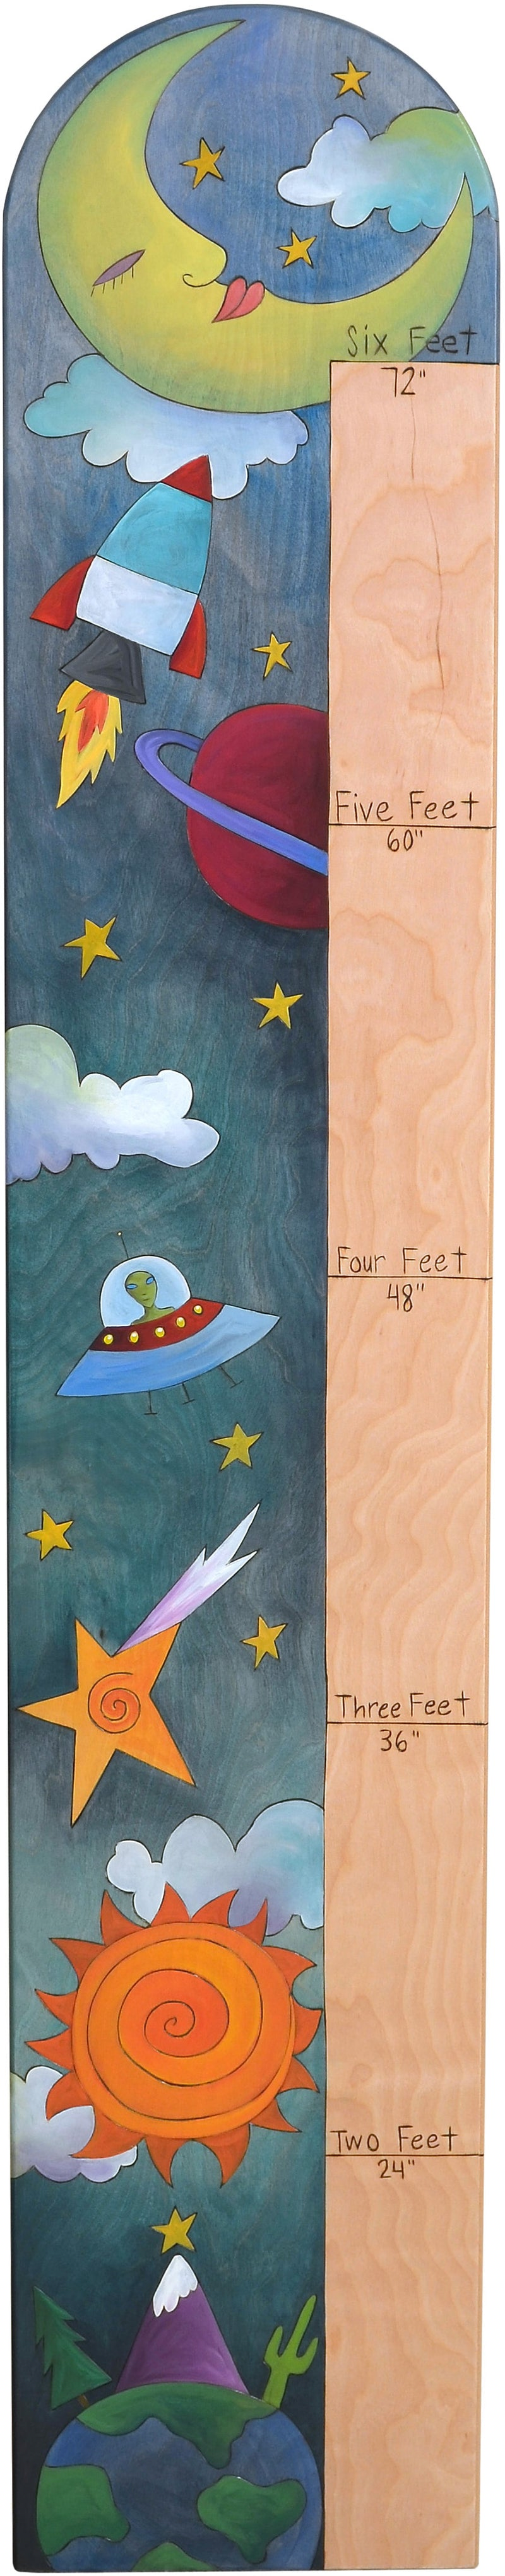 "Everlasting Growth Chart –  Inspirational space themed growth chart ""shoot for the stars"""